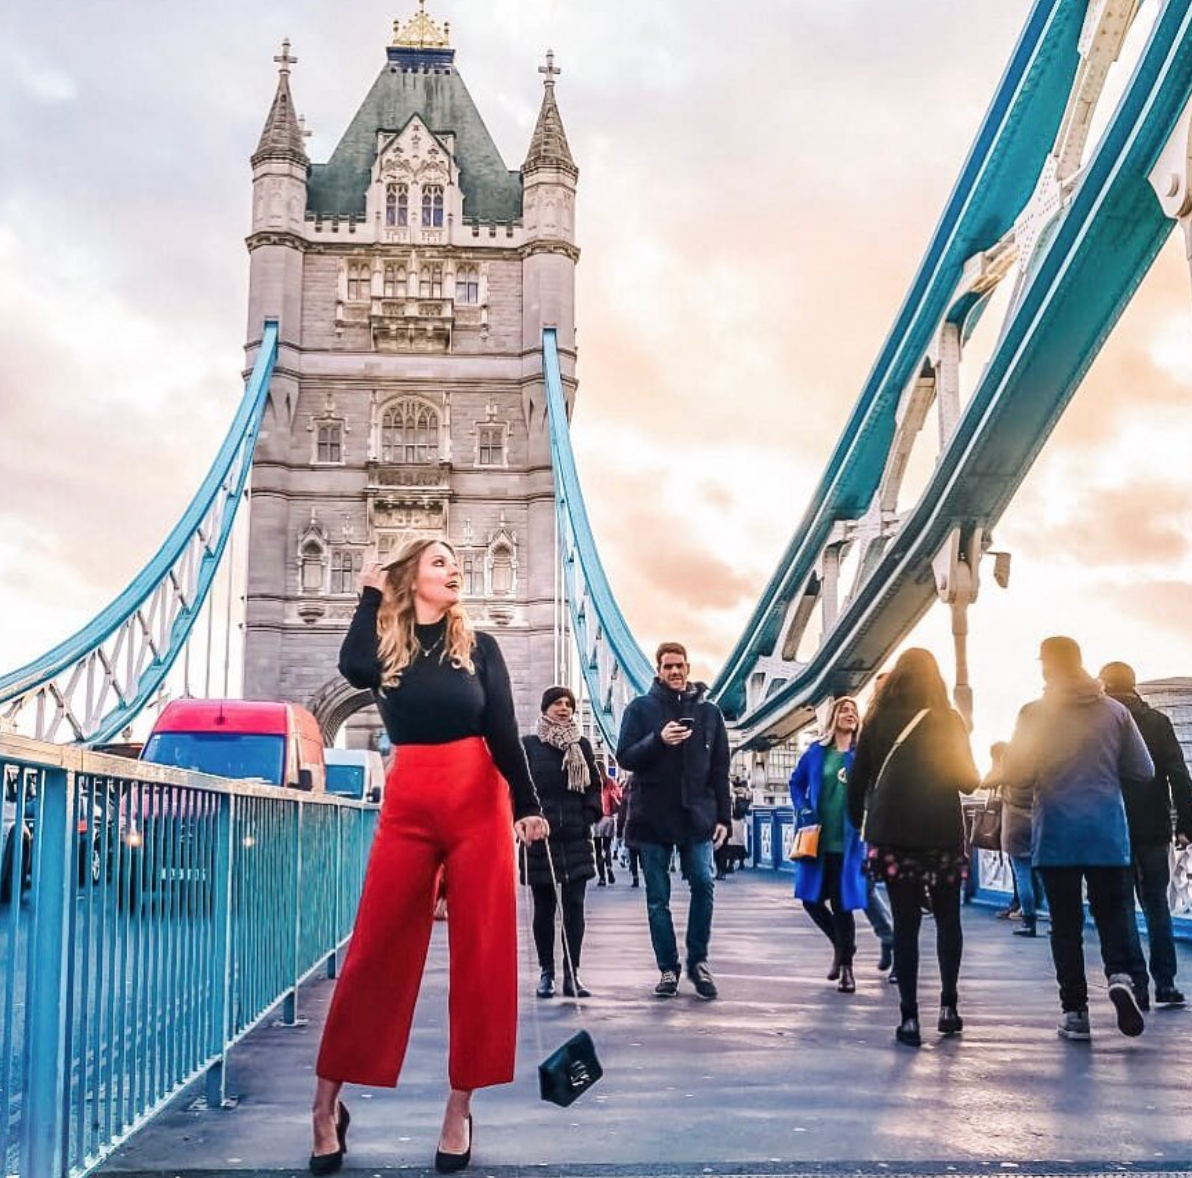 📸 @a_girlwhotravels captured a gorgeous shot of the Tower Bridge in London! 😍  #london #towerbridge #explore #travel #photography #fashion #sunset